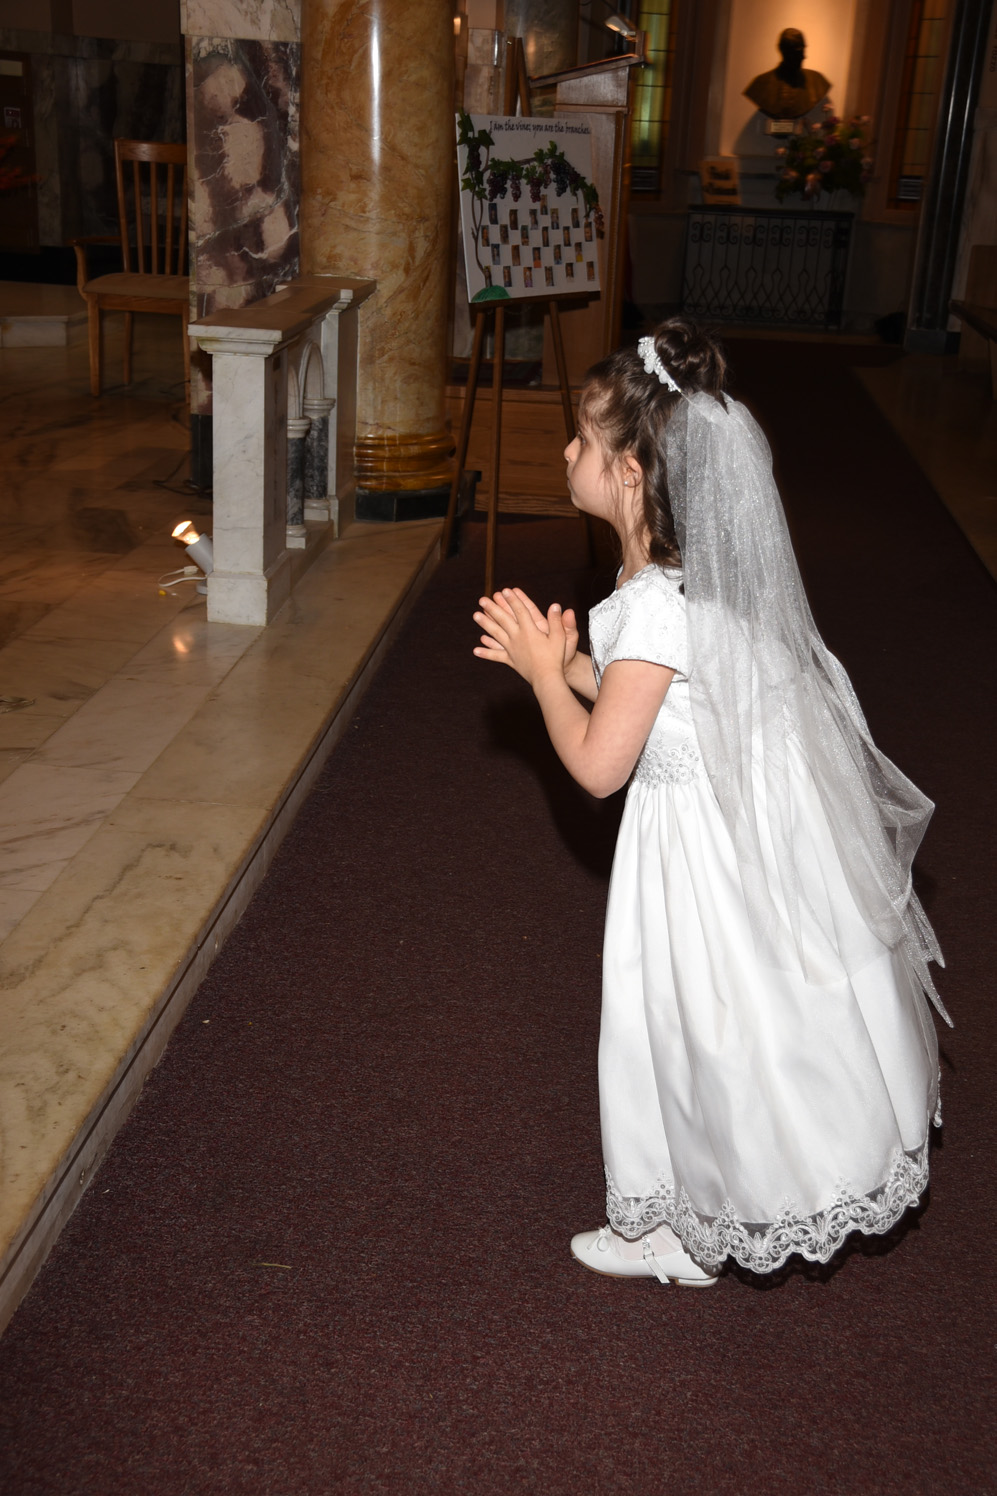 FIRST-COMMUNION-MAY-2-2021-1001001156